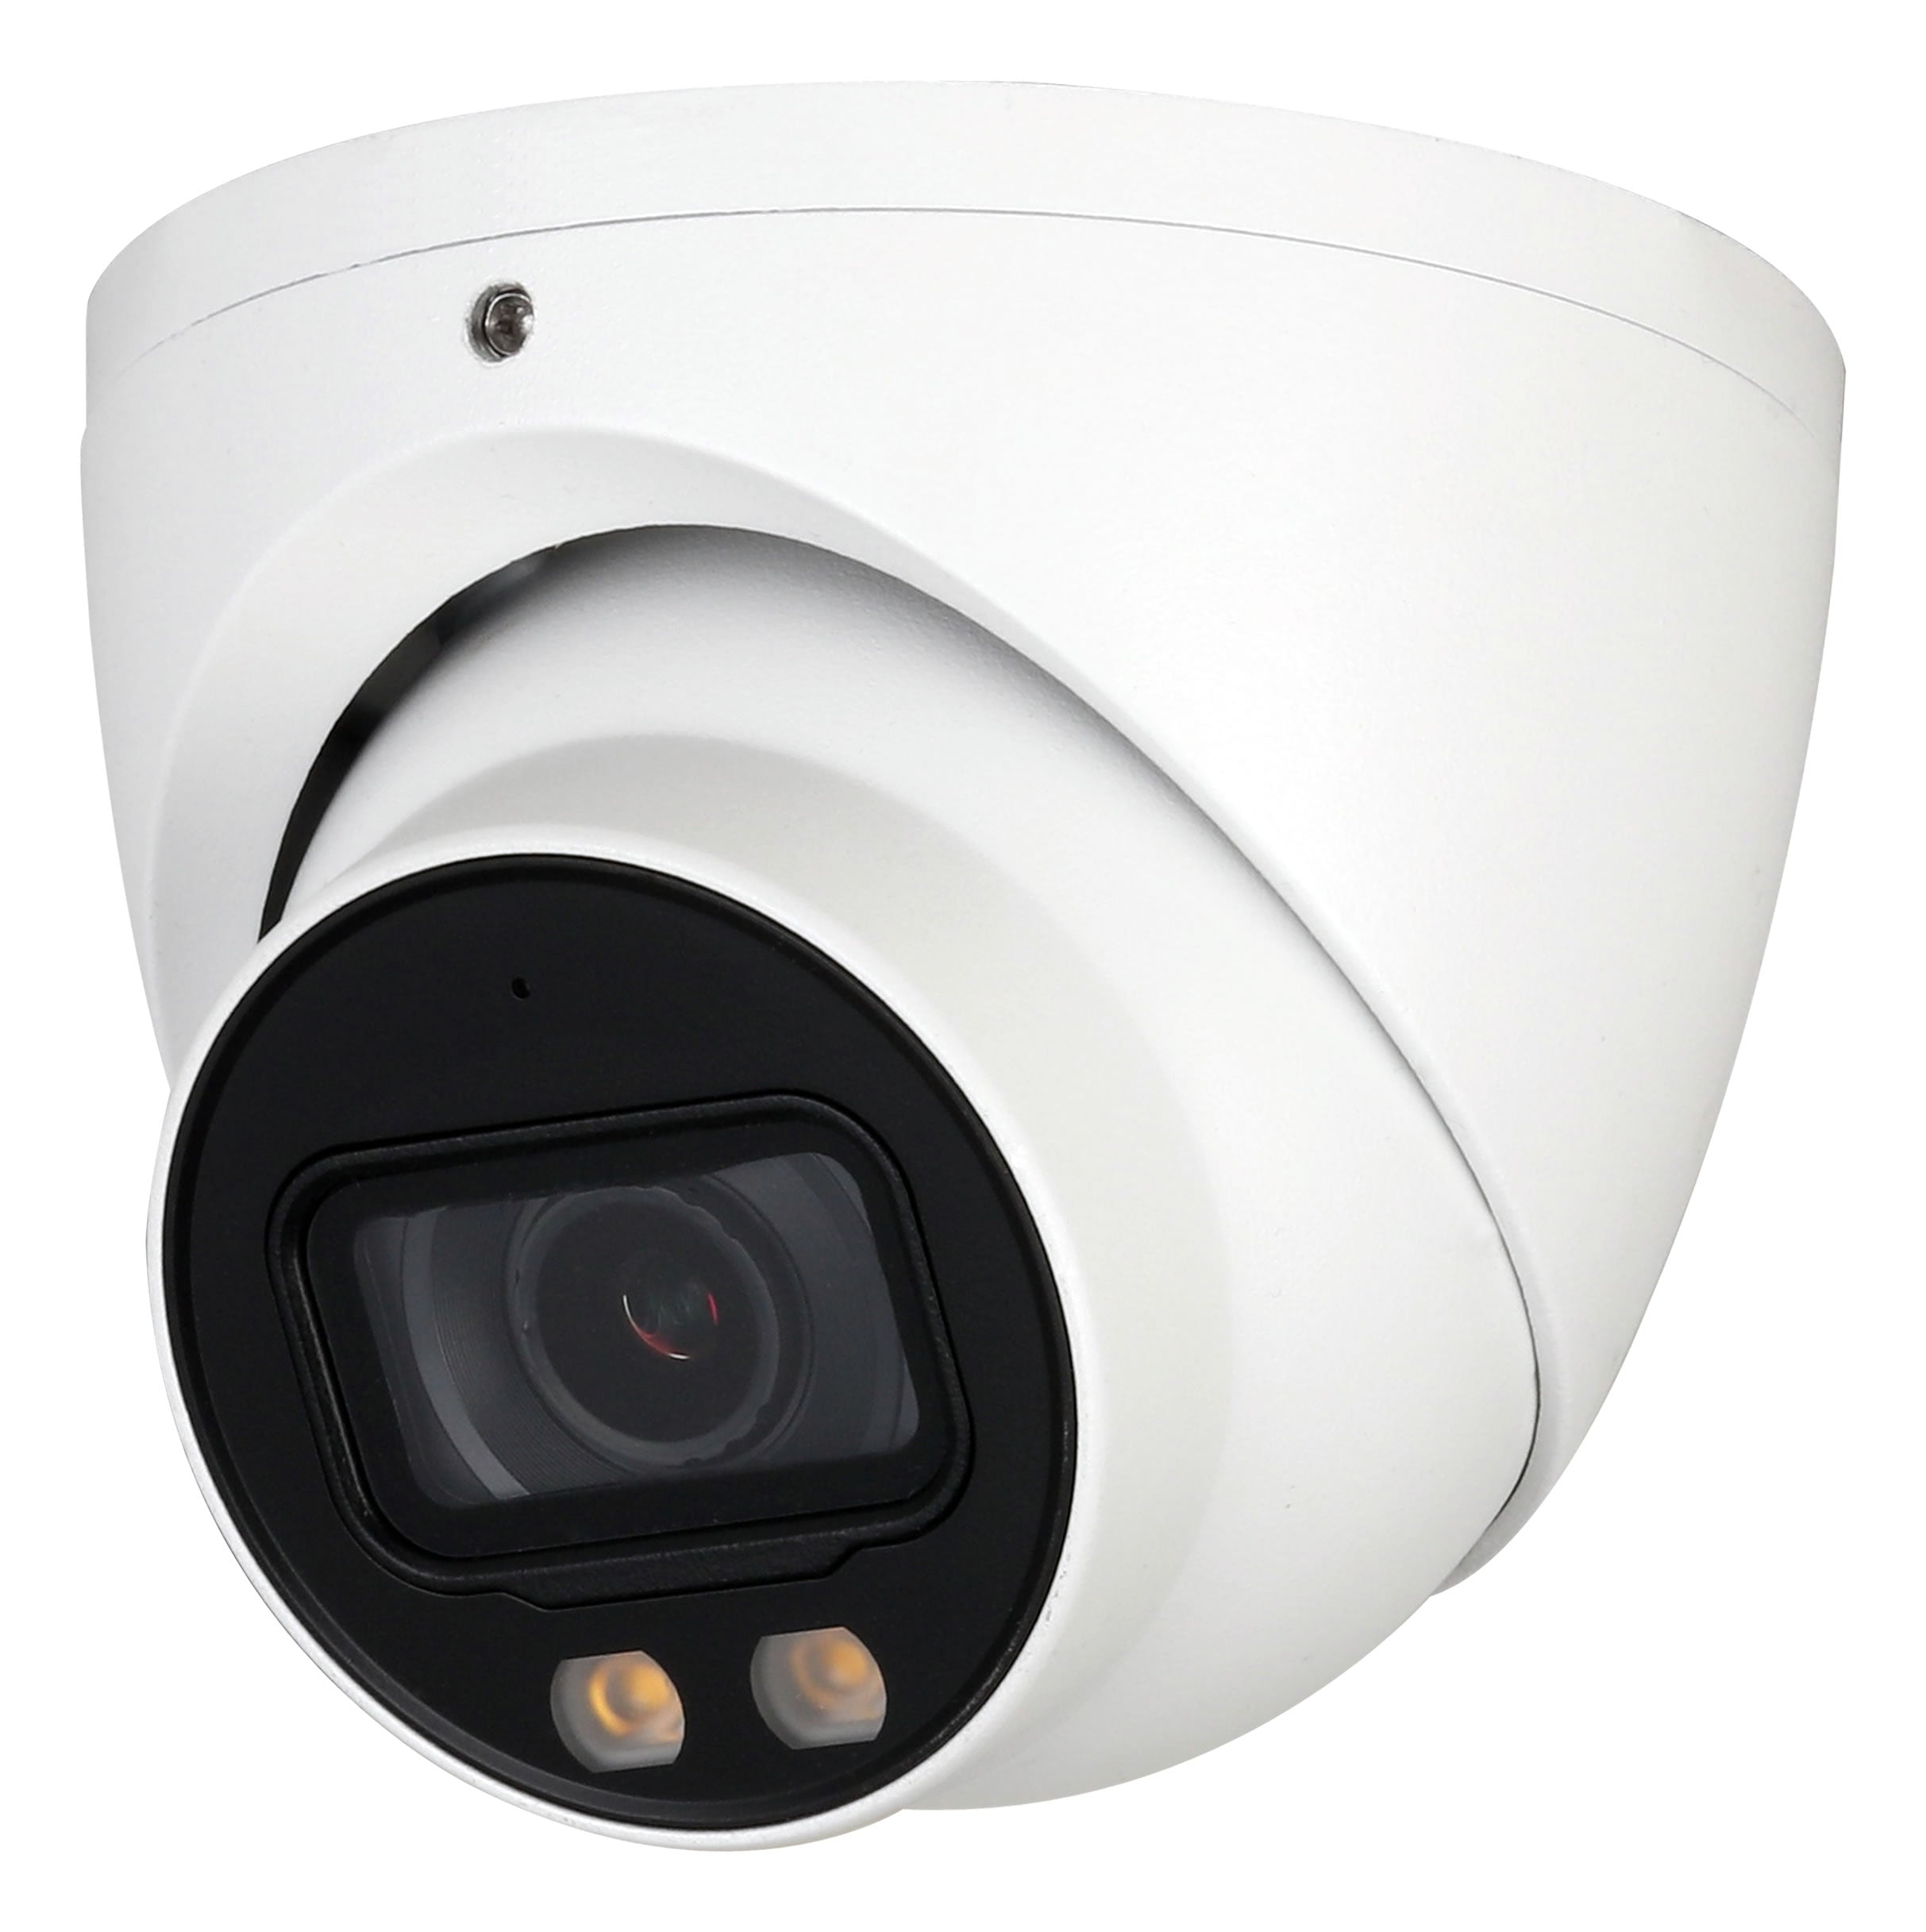 23-4D22A49T-A-L 2MP HD Full-color Starlight WDR Smart LED Eyeball Camera